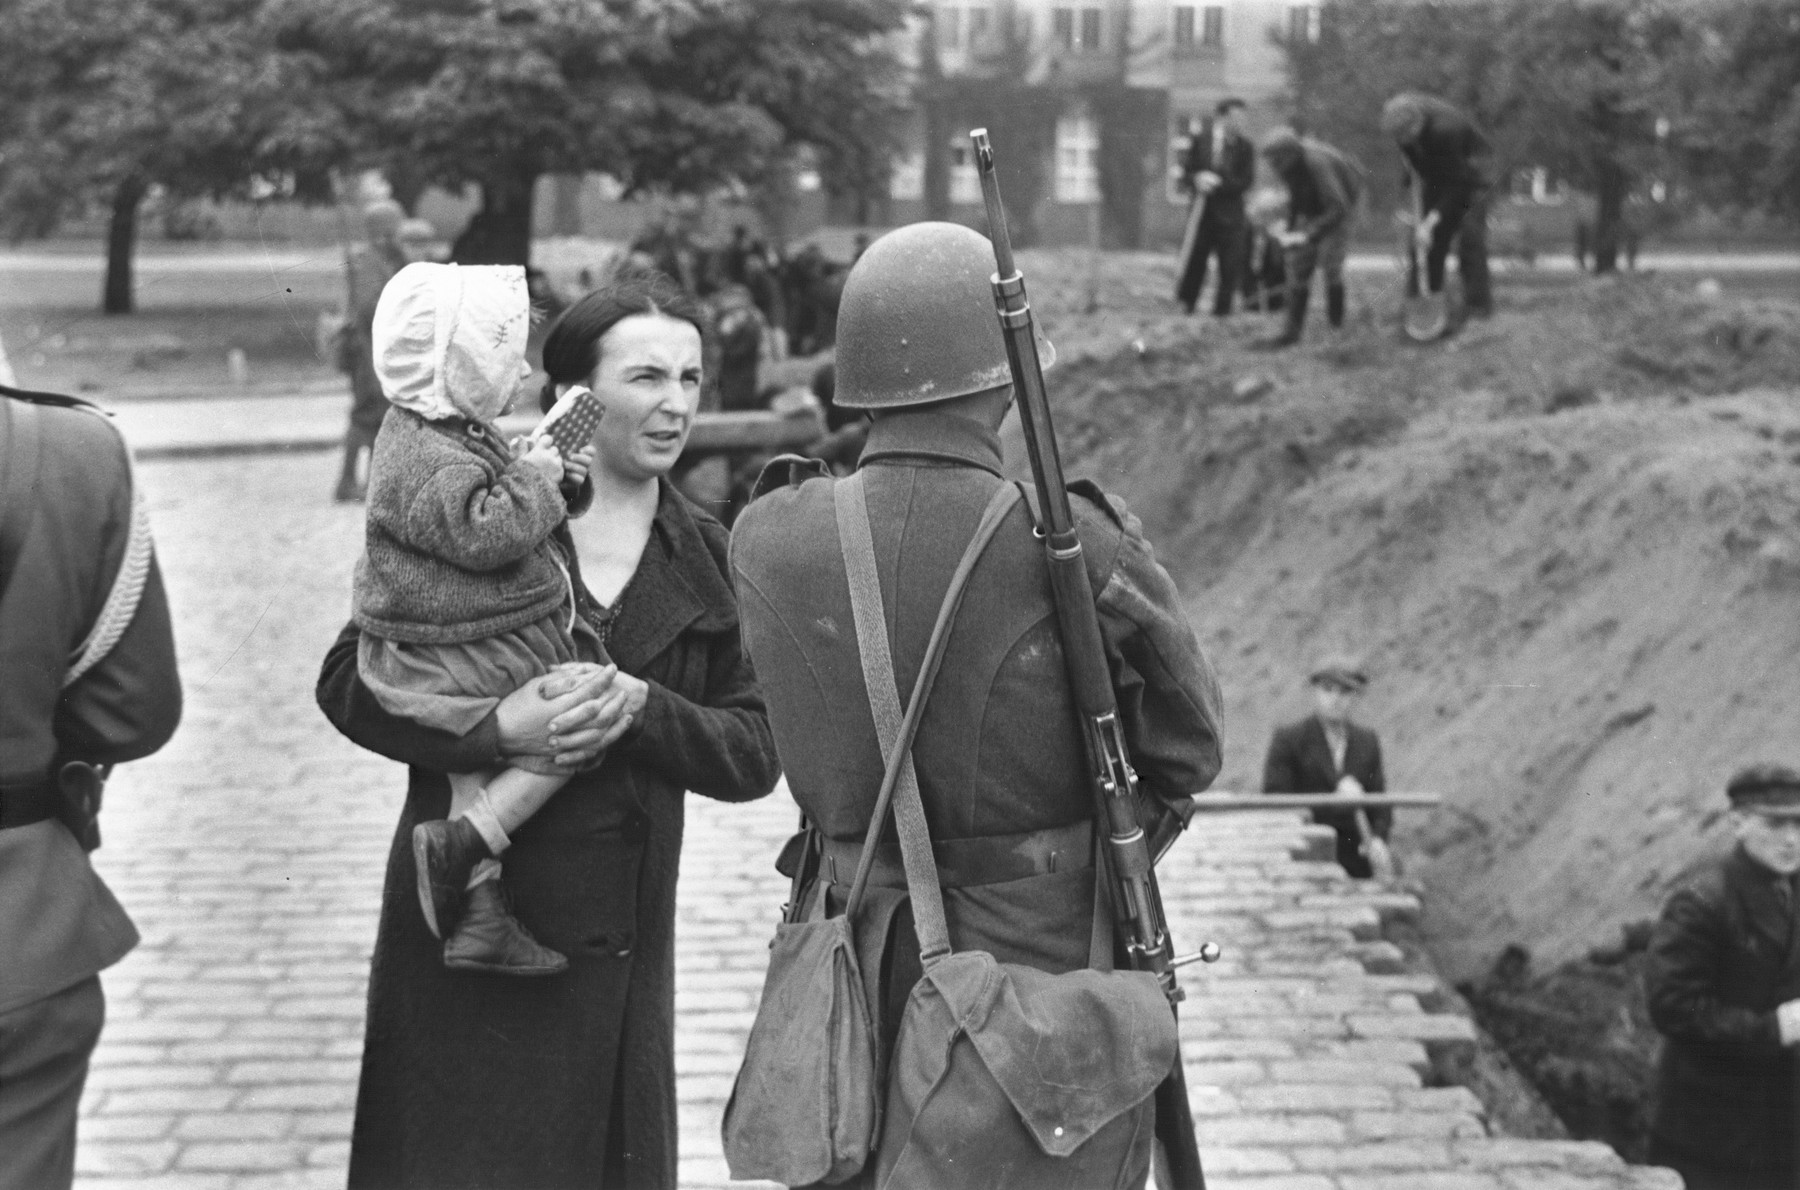 A Polish woman holding her child converses with her soldier husband, who supervises a group of civilians digging an anti-tank trench along a street in Warsaw to slow the advance of the German army.